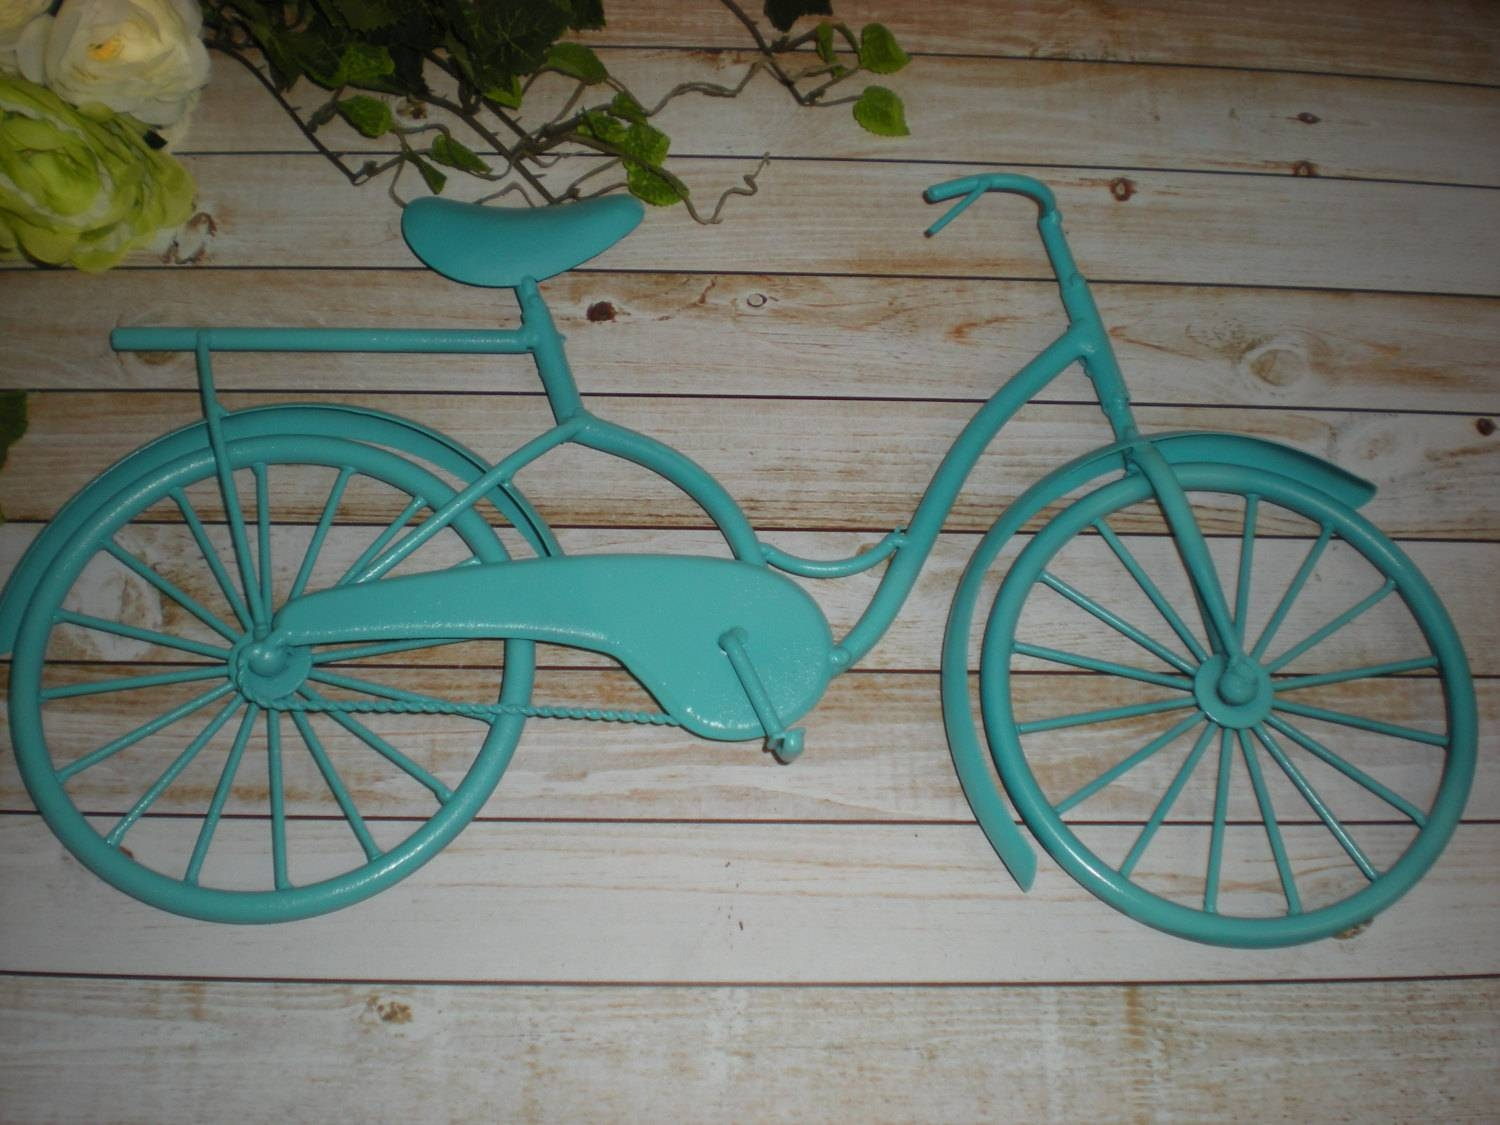 Winsome Metal Bicycle Wall Decor Bicycle Wall Art Wall Wrought Pertaining To Most Current Metal Bicycle Wall Art (View 15 of 20)